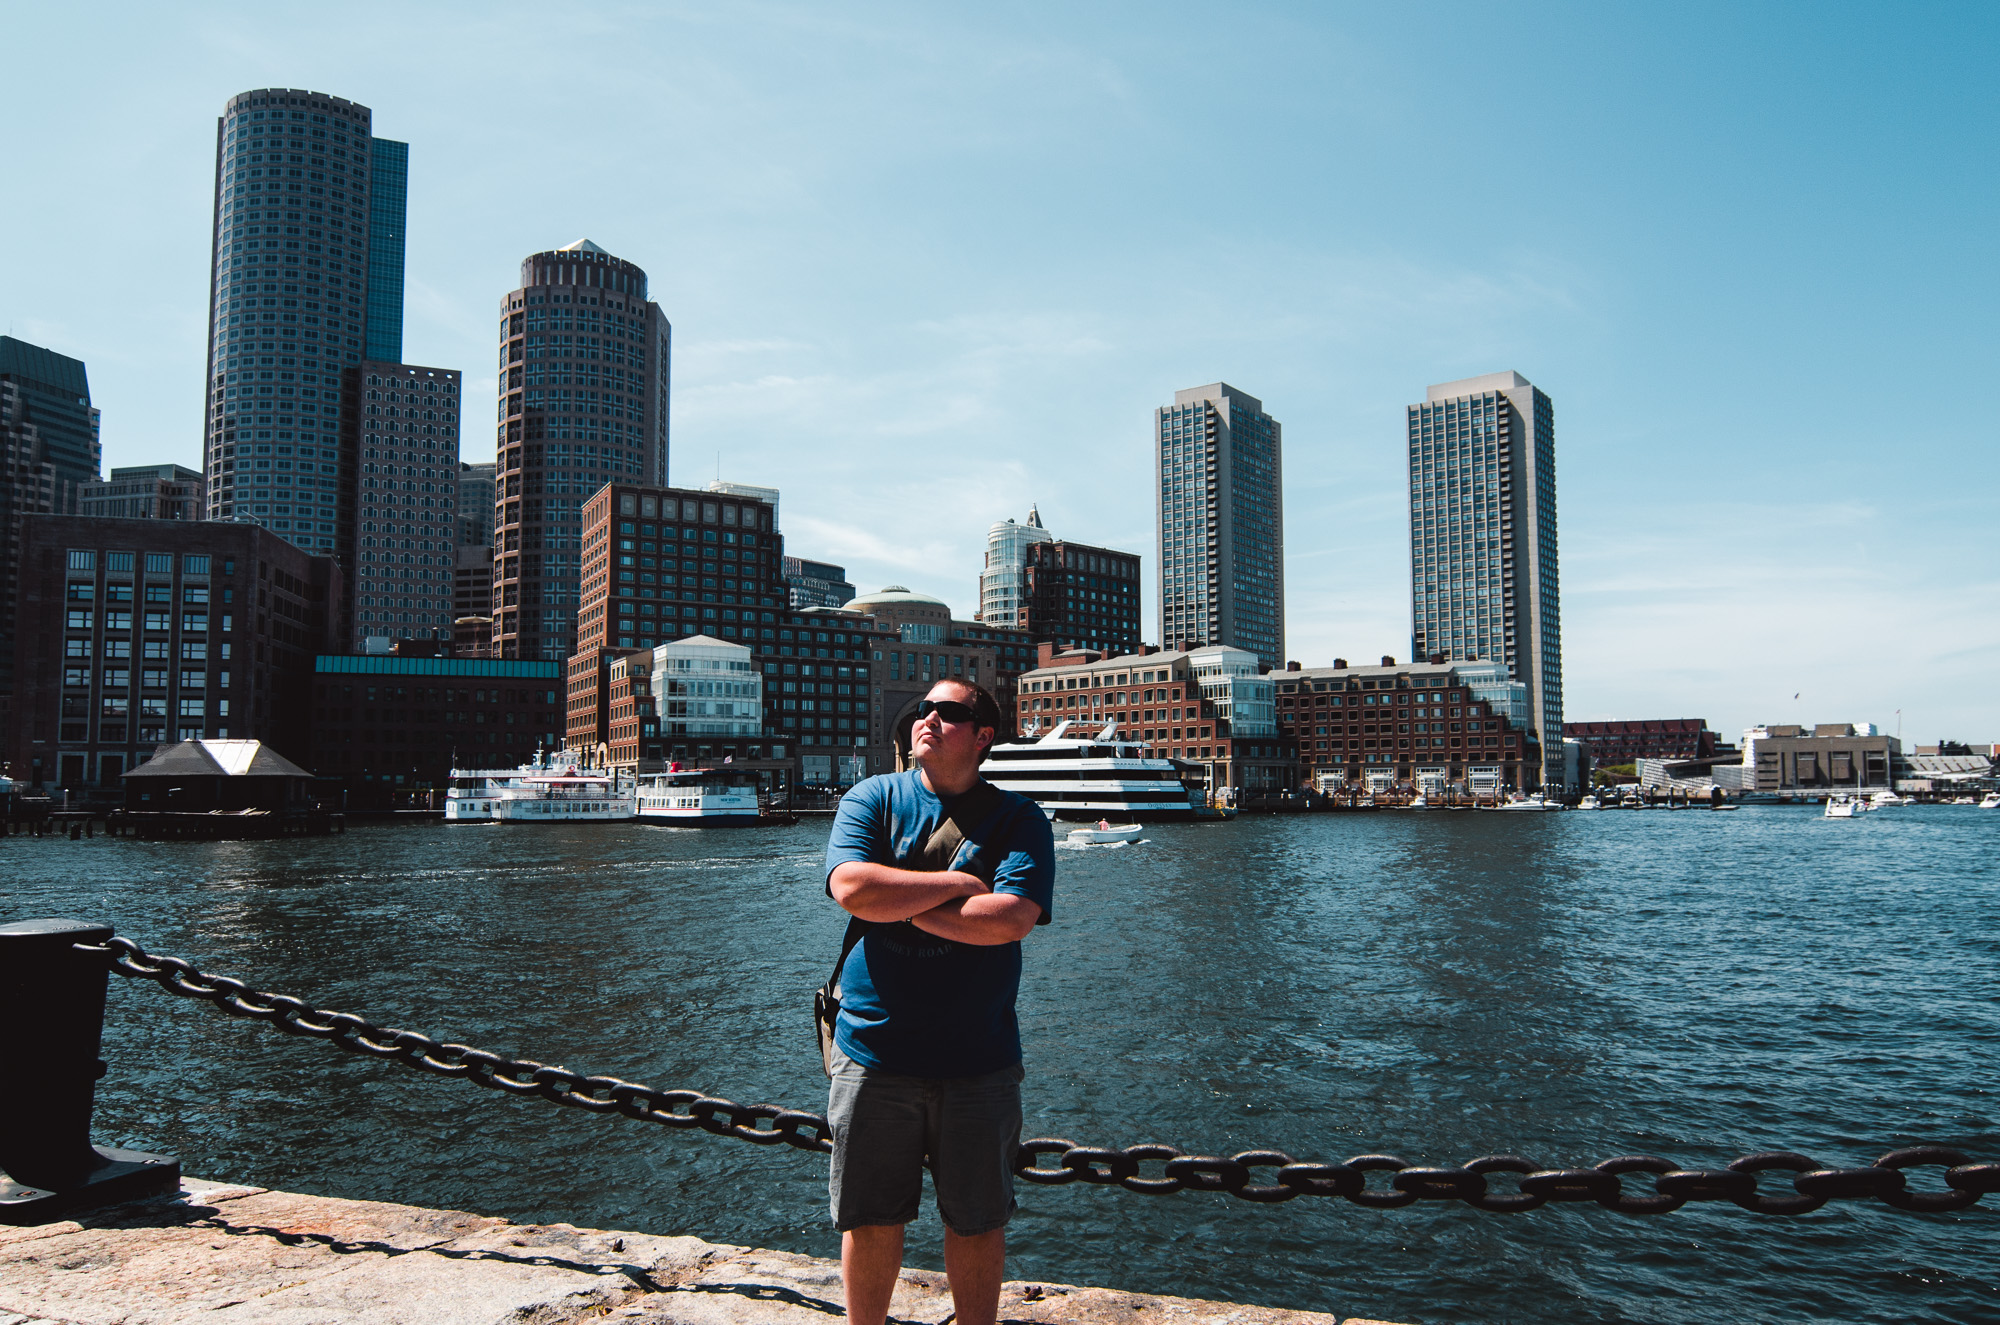 Me back in 2012 when I visited Boston, before I lost 100 pounds. Photo taken by my Mom :)